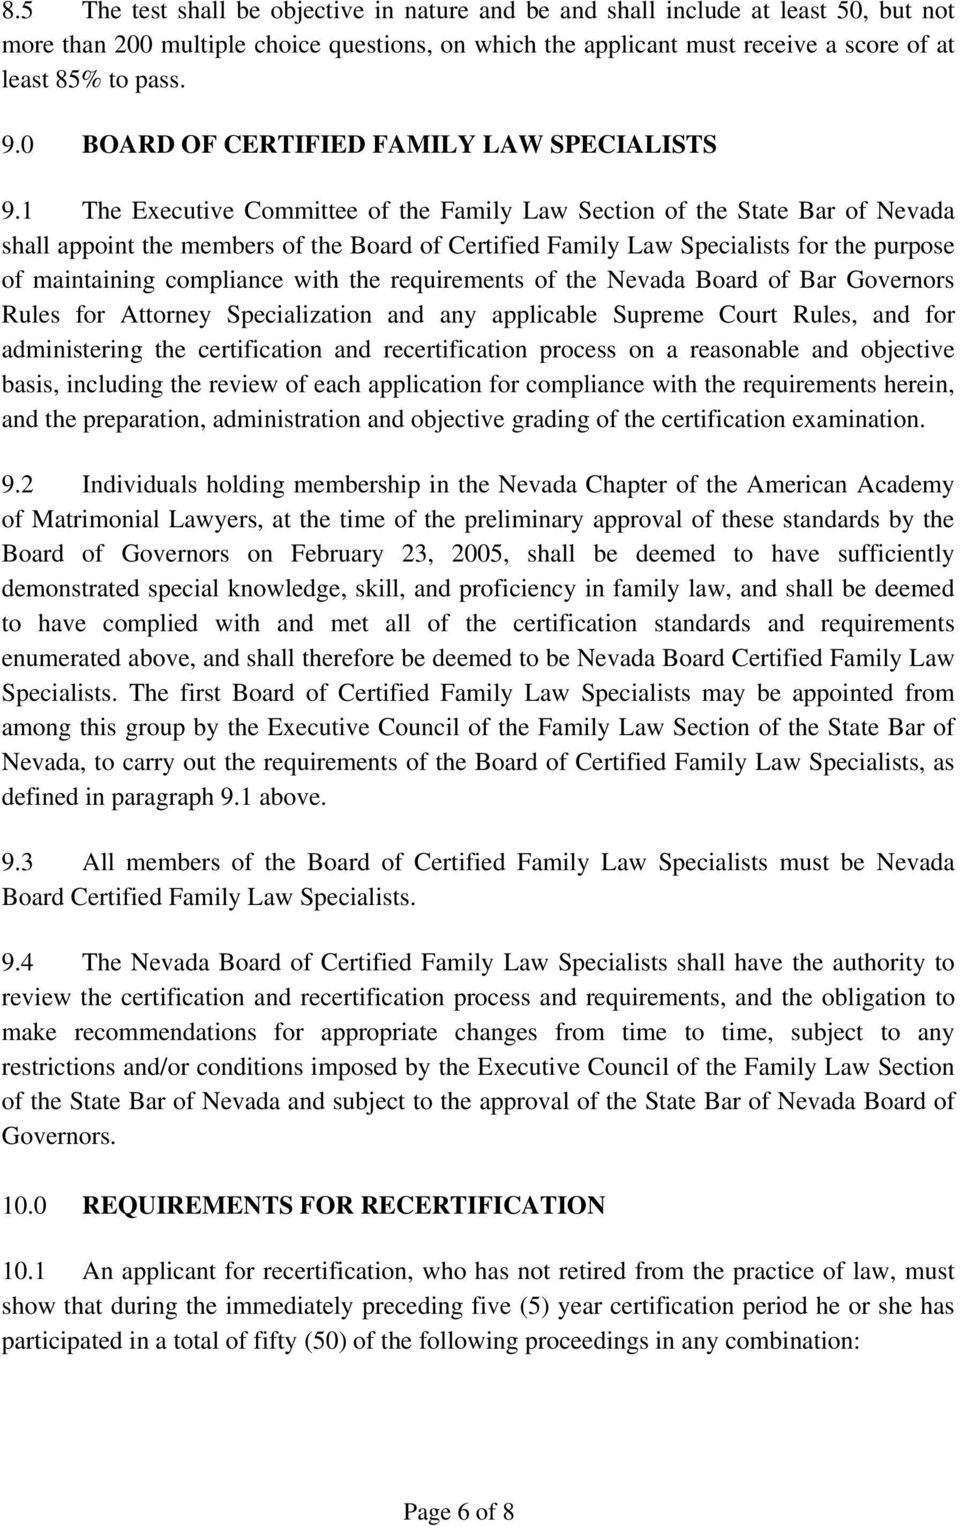 1 The Executive Committee of the Family Law Section of the State Bar of Nevada shall appoint the members of the Board of Certified Family Law Specialists for the purpose of maintaining compliance